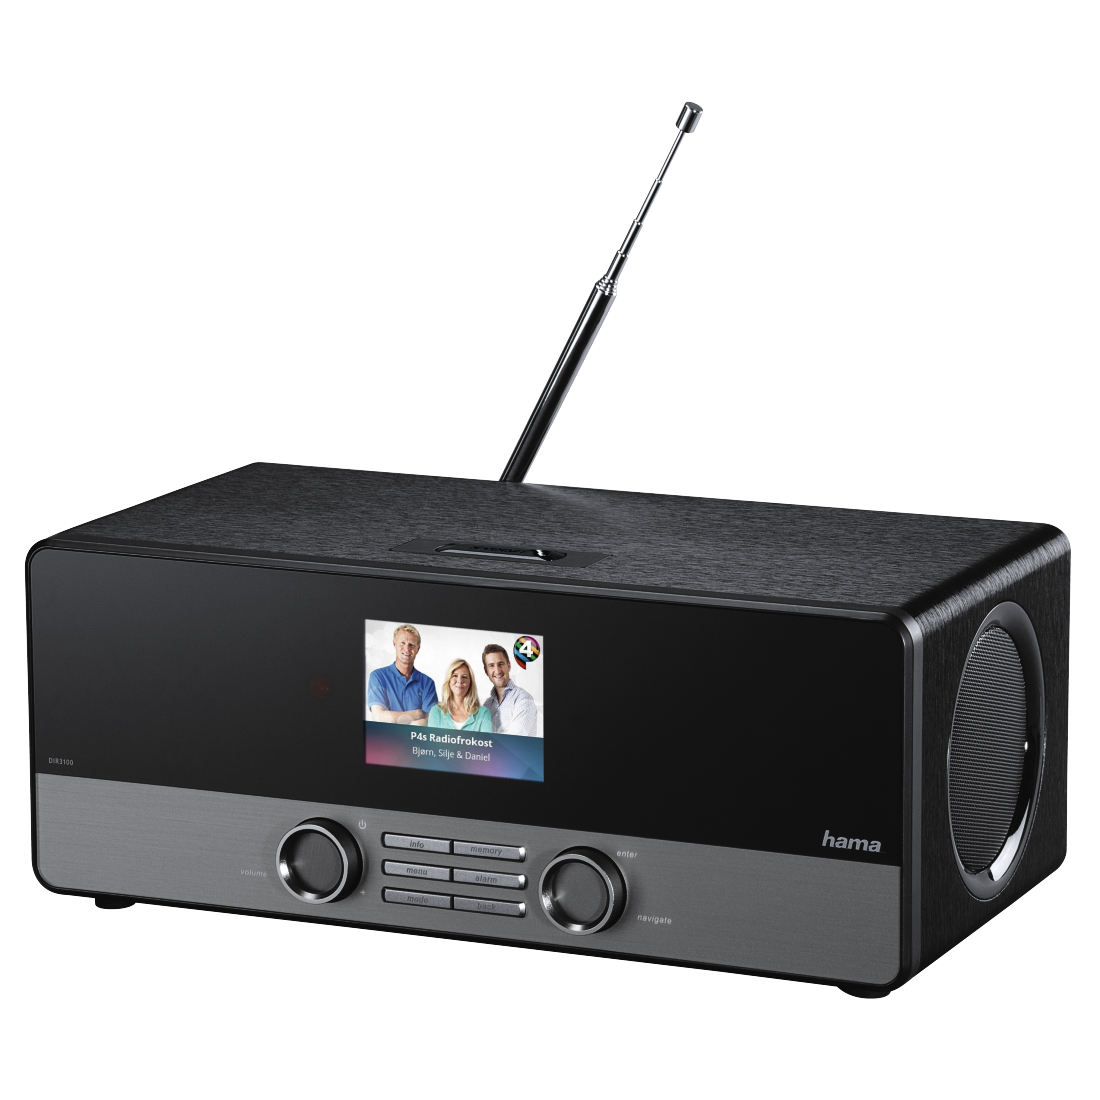 abx8 High-Res Image 8 - Hama, DIR3100MS Digital Radio, Internet Radio/DAB+/FM/Multi-Room/ App Control